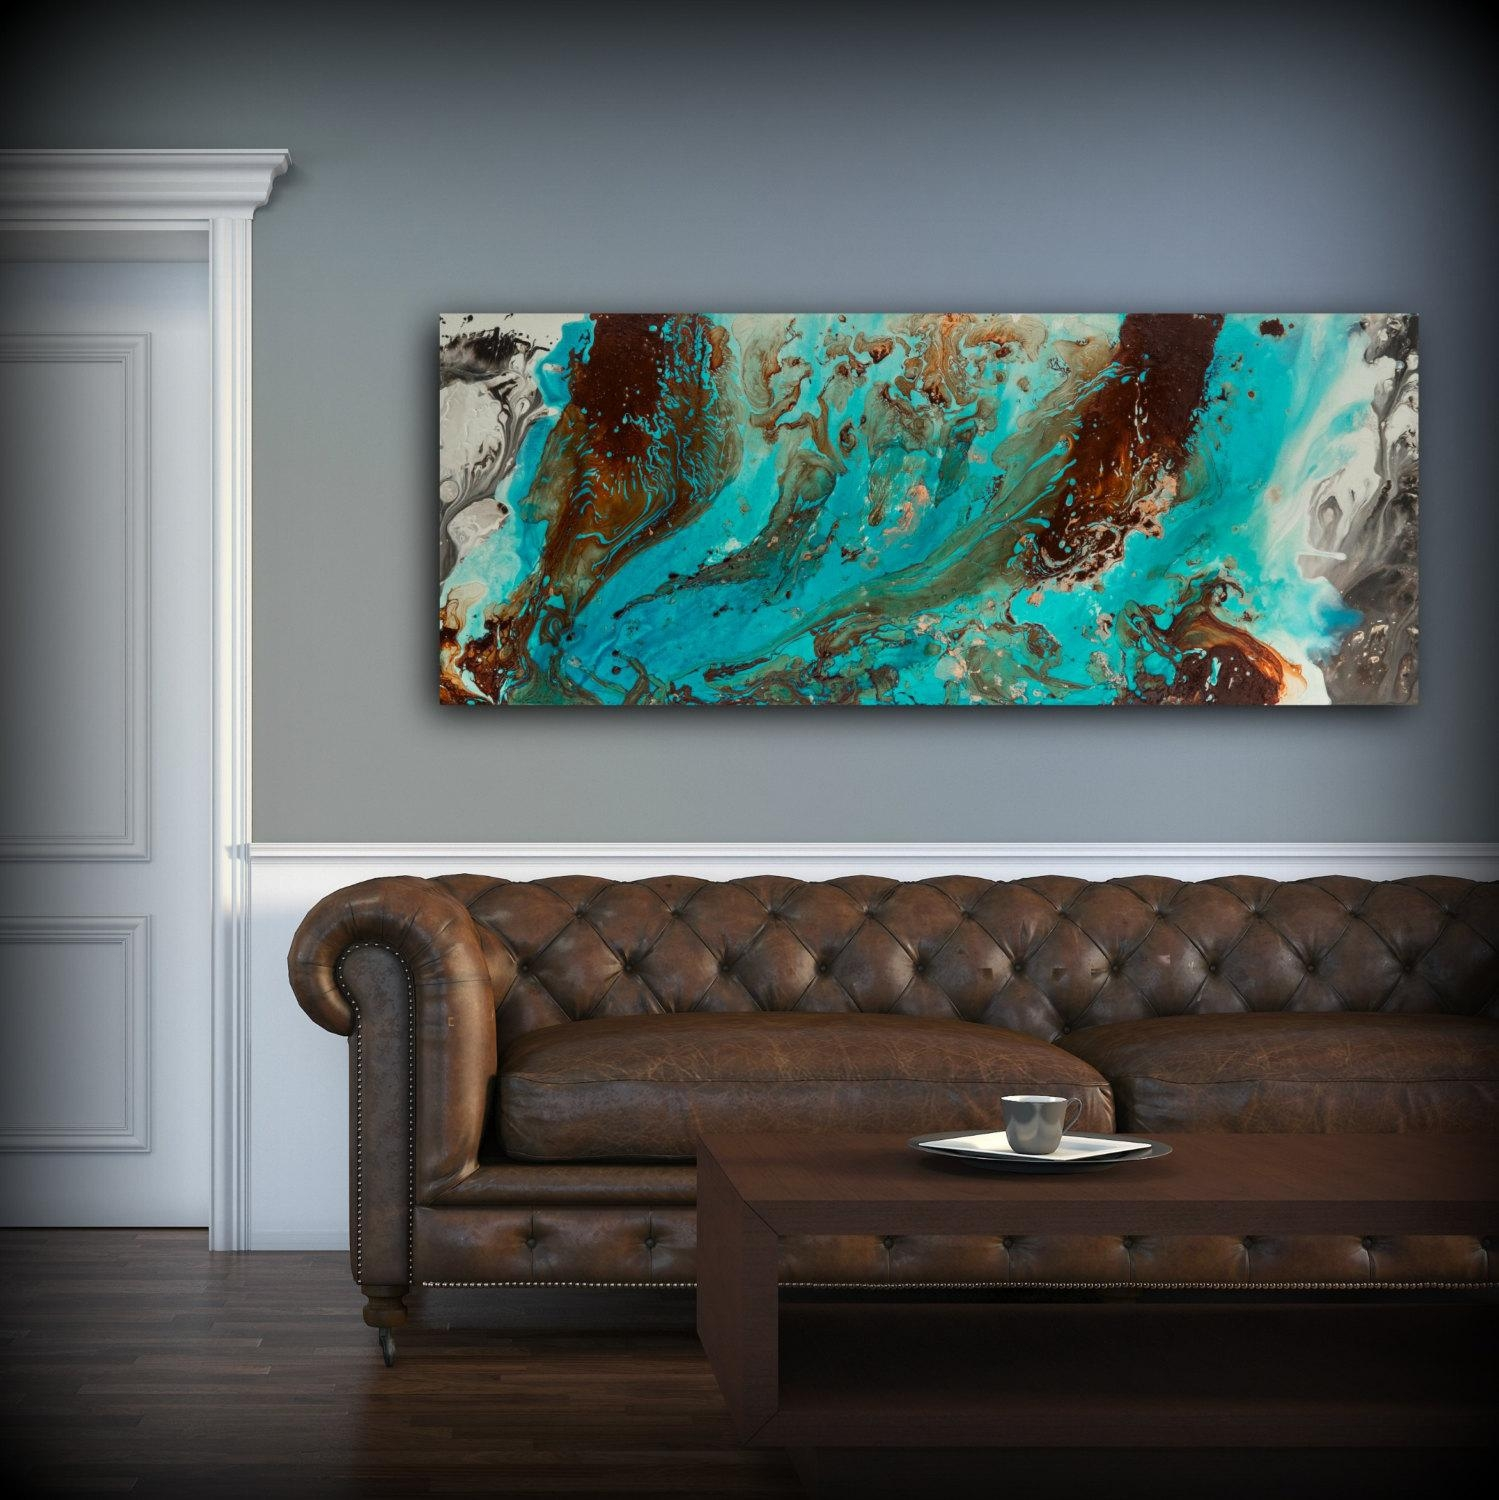 Aqua Print, Blue And Brown Wall Art Decor, Colourful, Bohemian Art Intended For Brown And Turquoise Wall Art (Image 1 of 20)